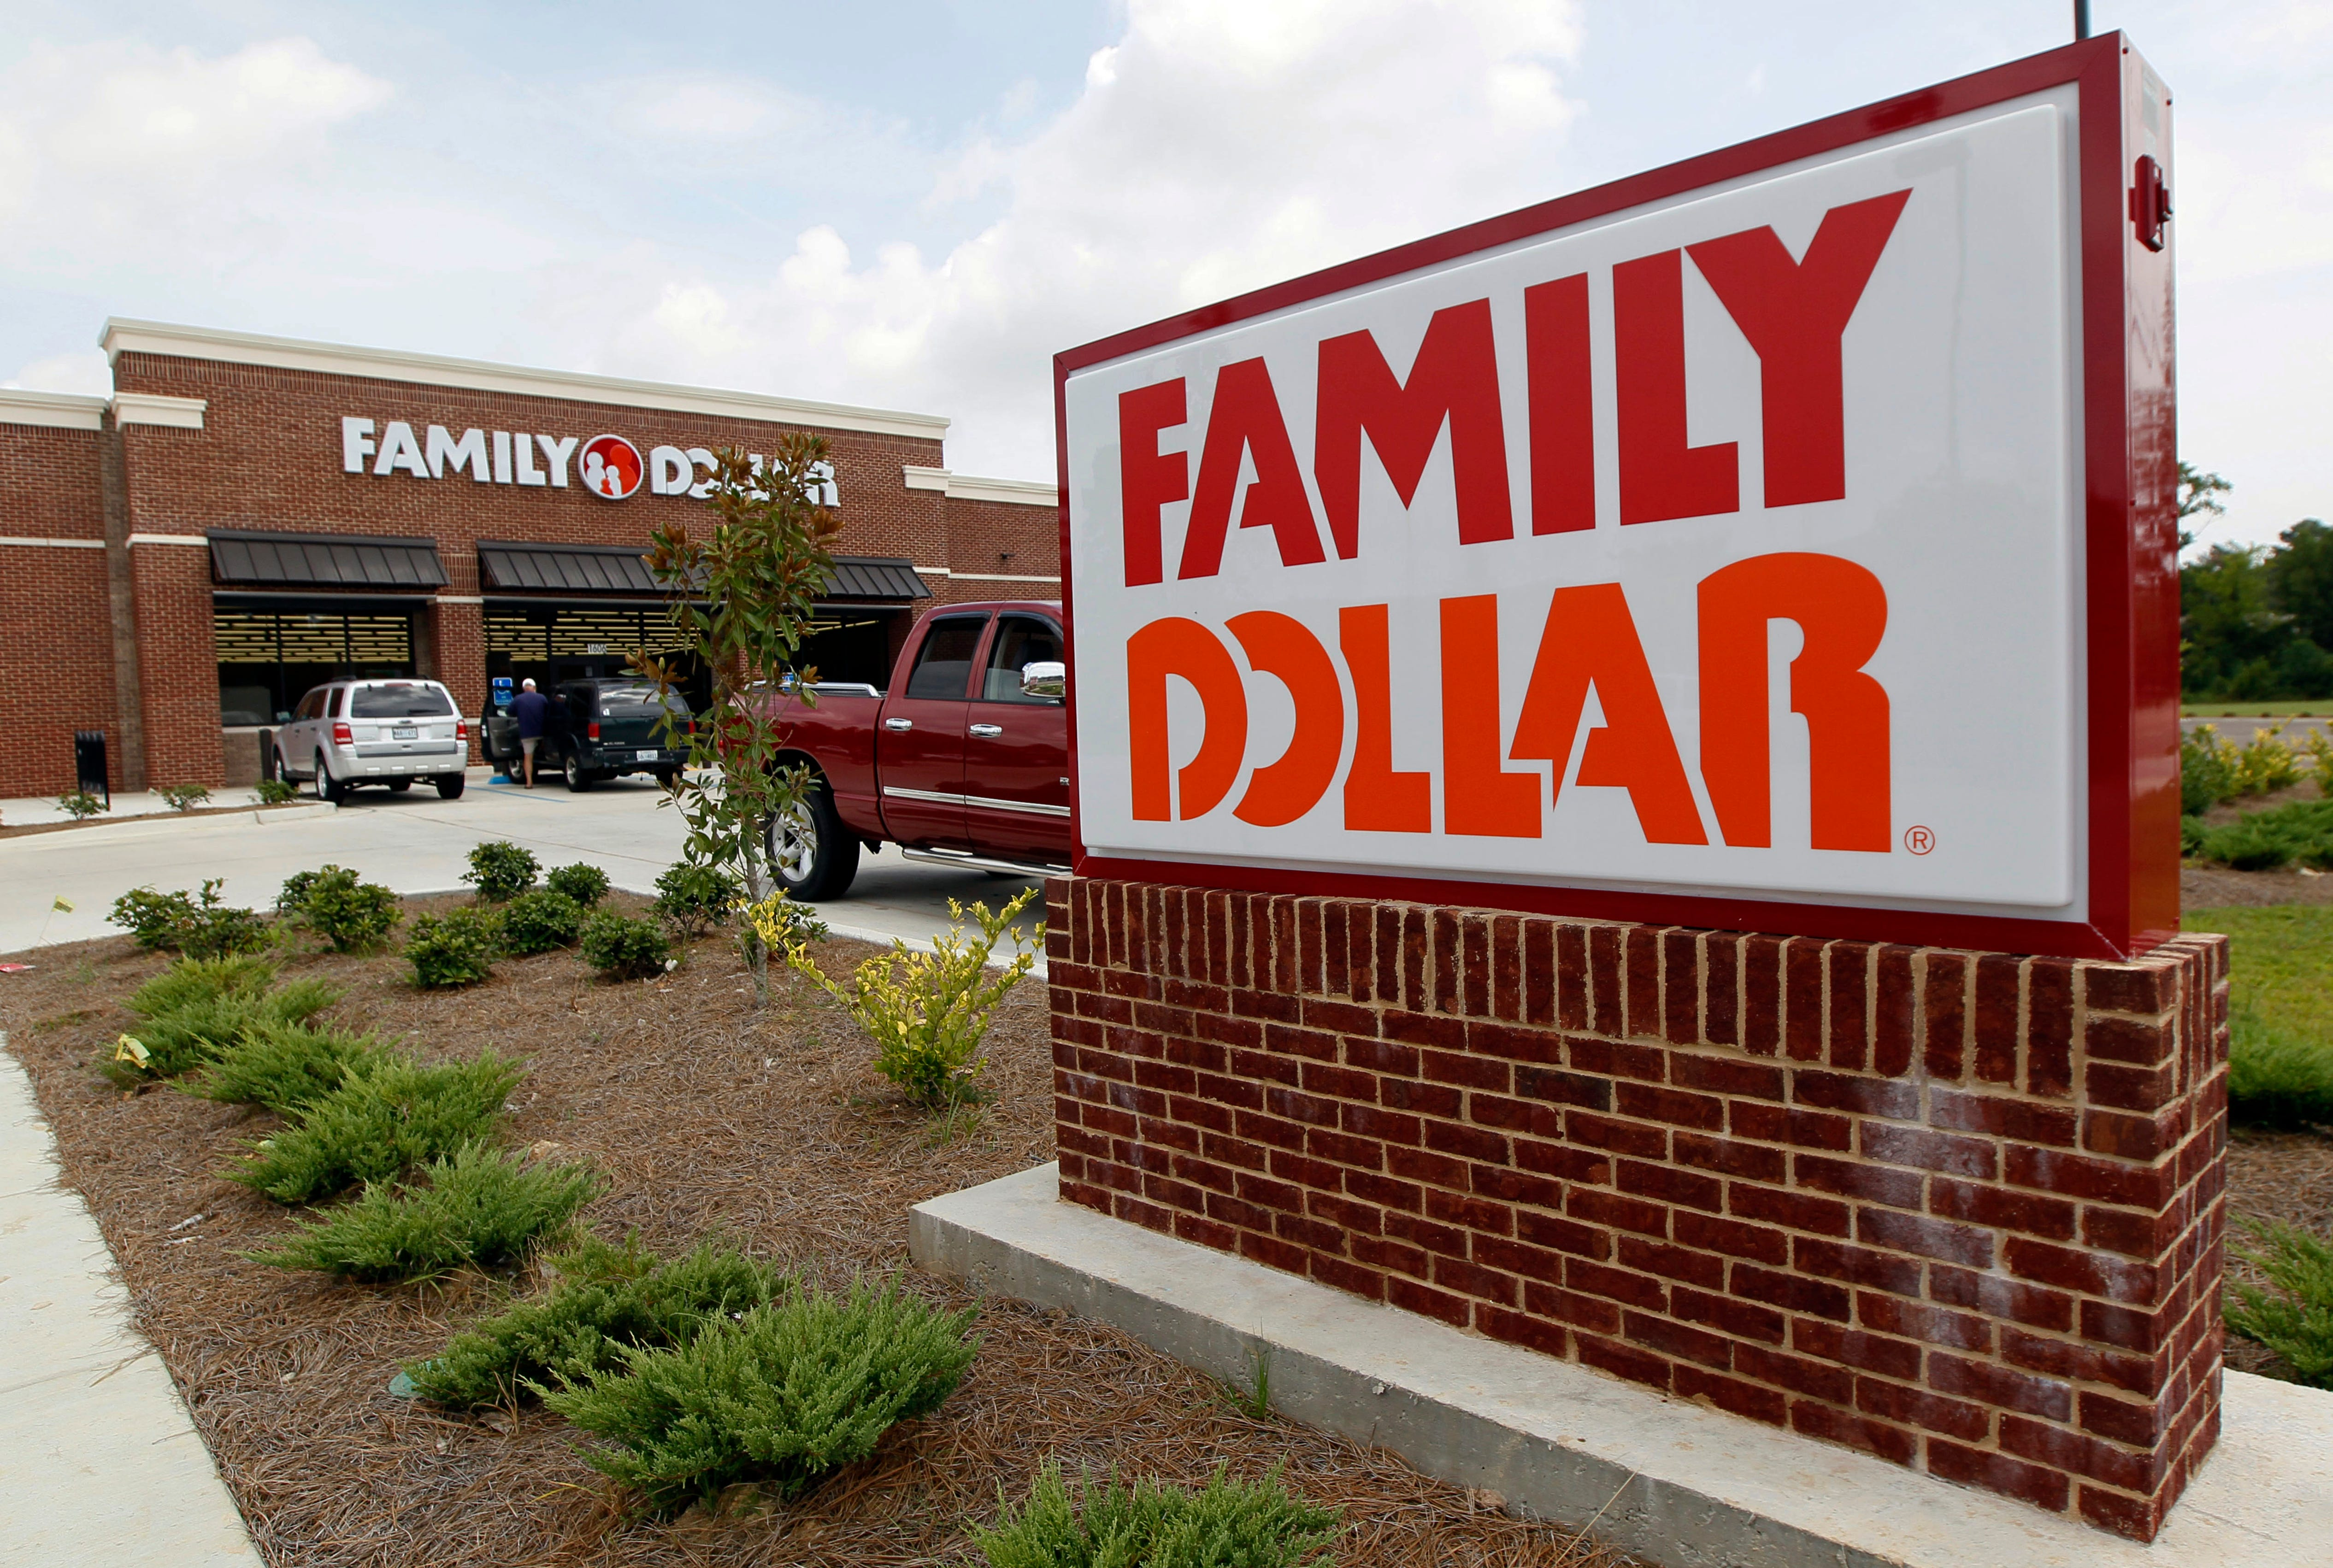 Family Dollar will close hundreds of stores